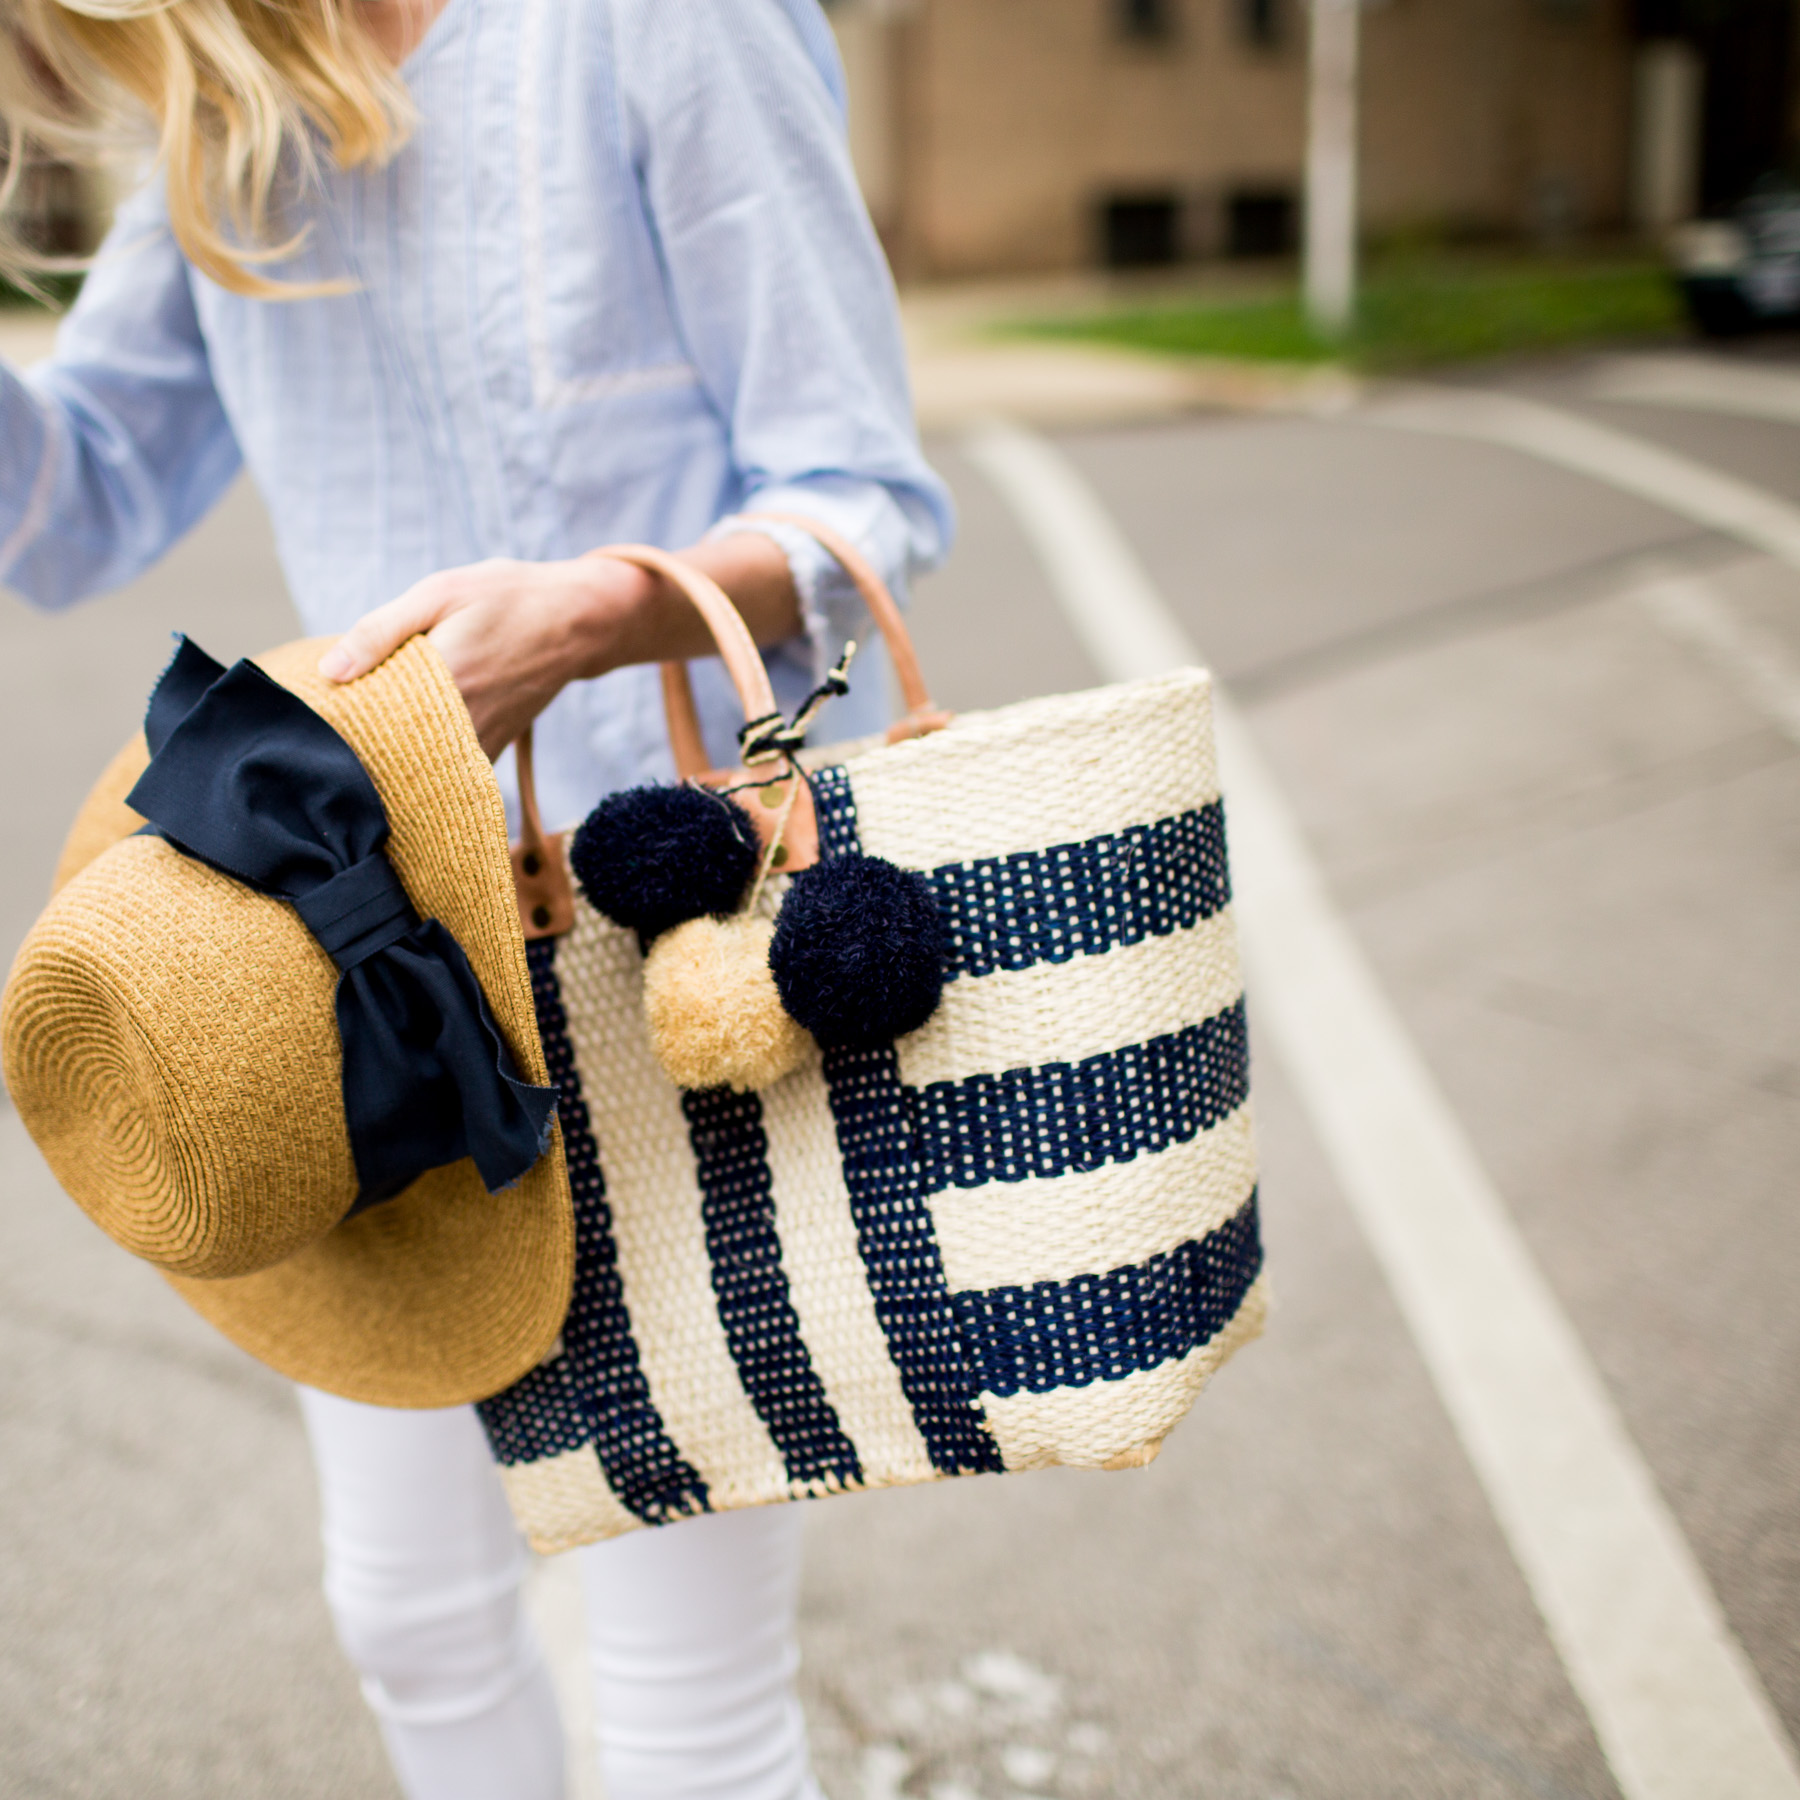 Mar Y Sol Tote  / Tuckernuck Hat